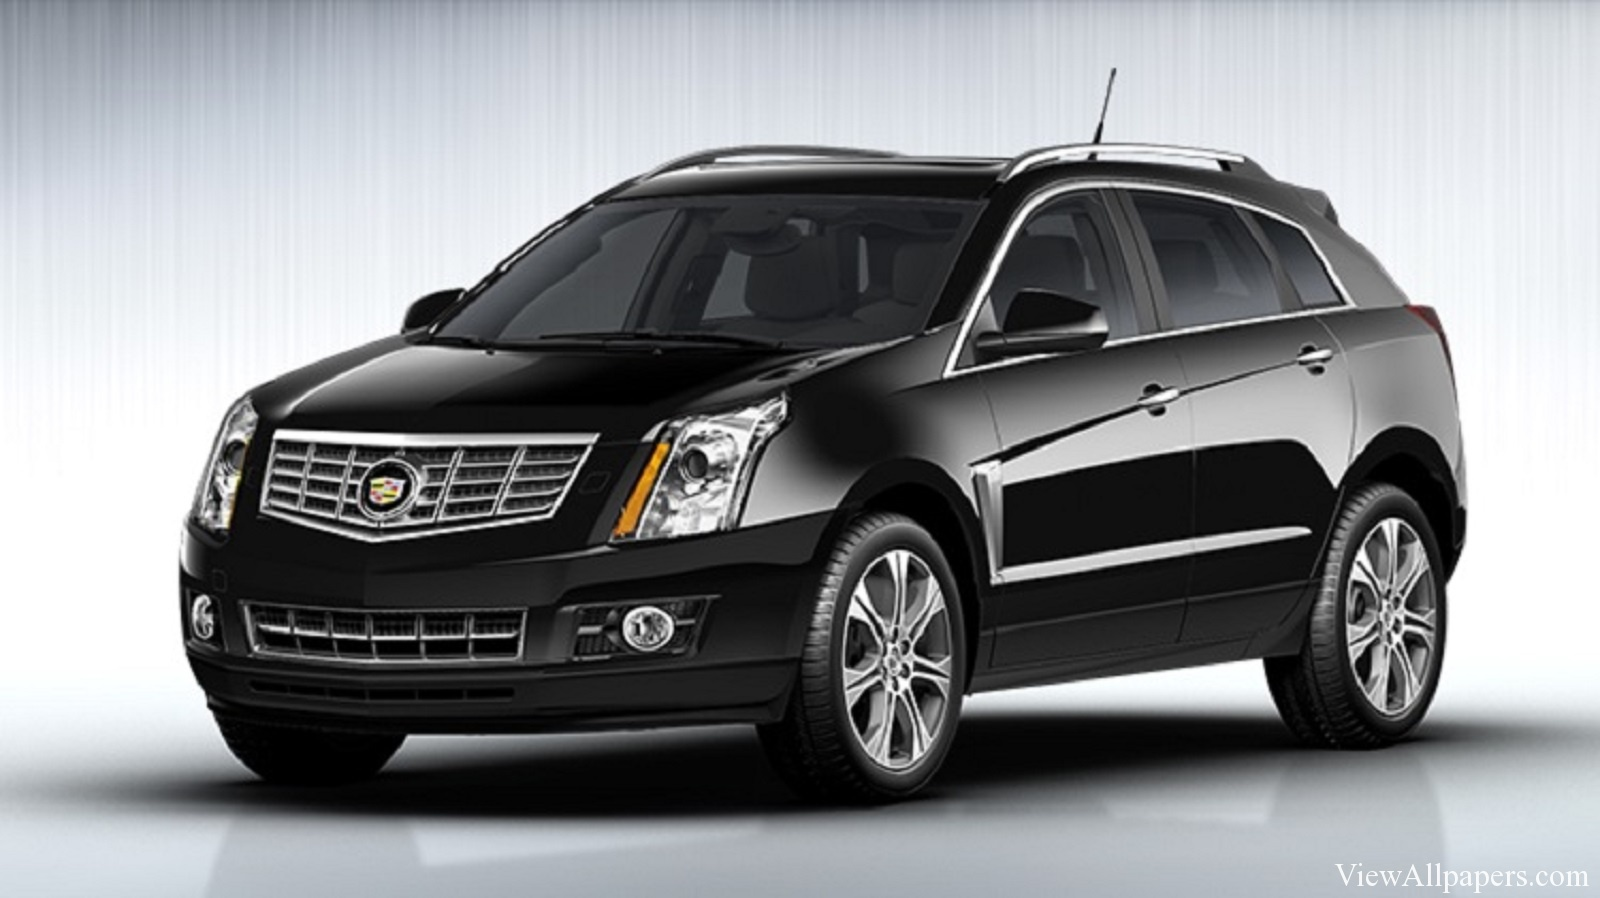 2016 Cadillac Srx ii – pictures, information and specs - Auto-Database.com